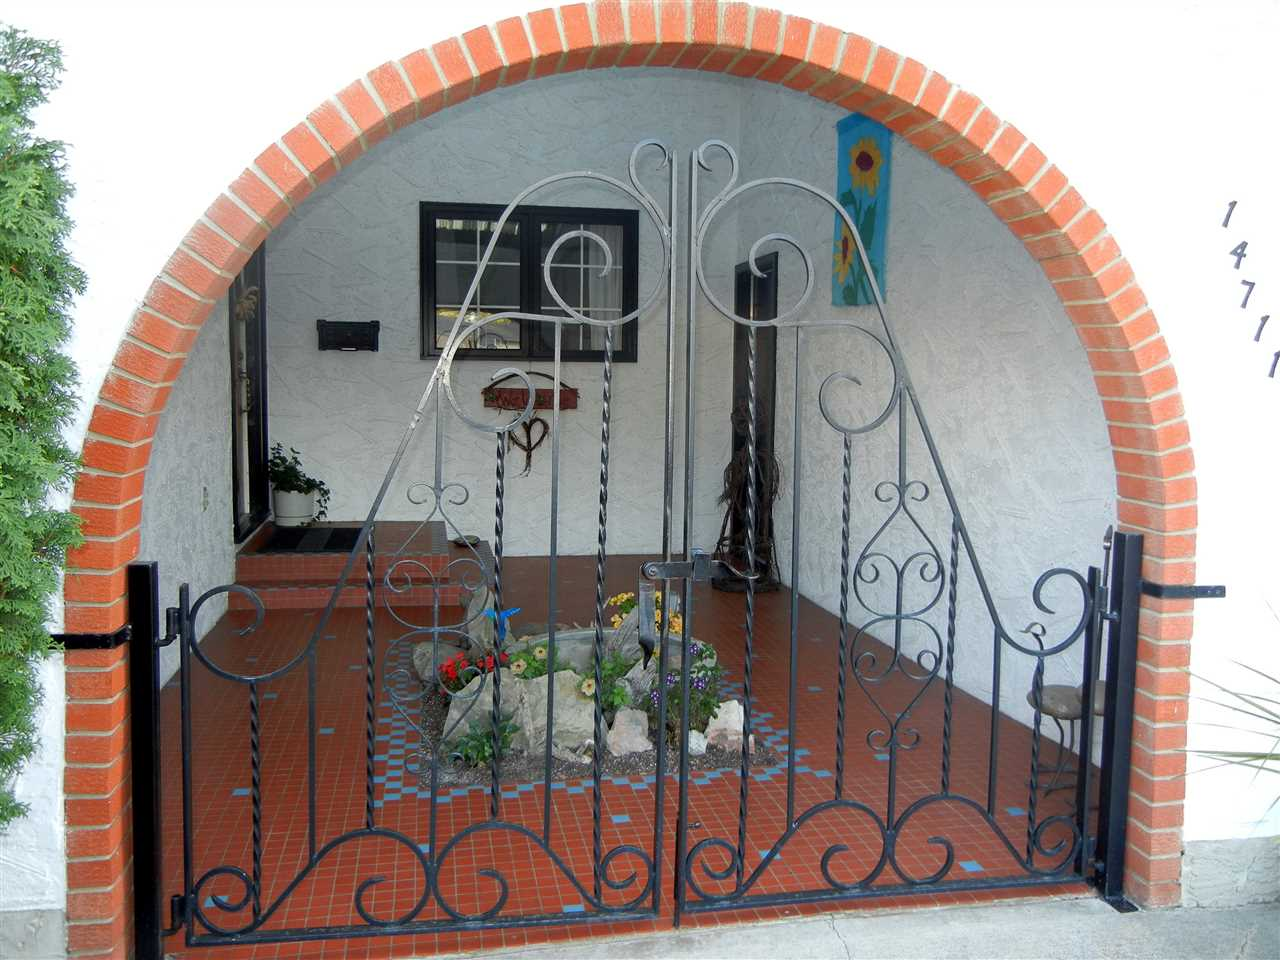 Covered entrance with wrought iron gate and skylight.